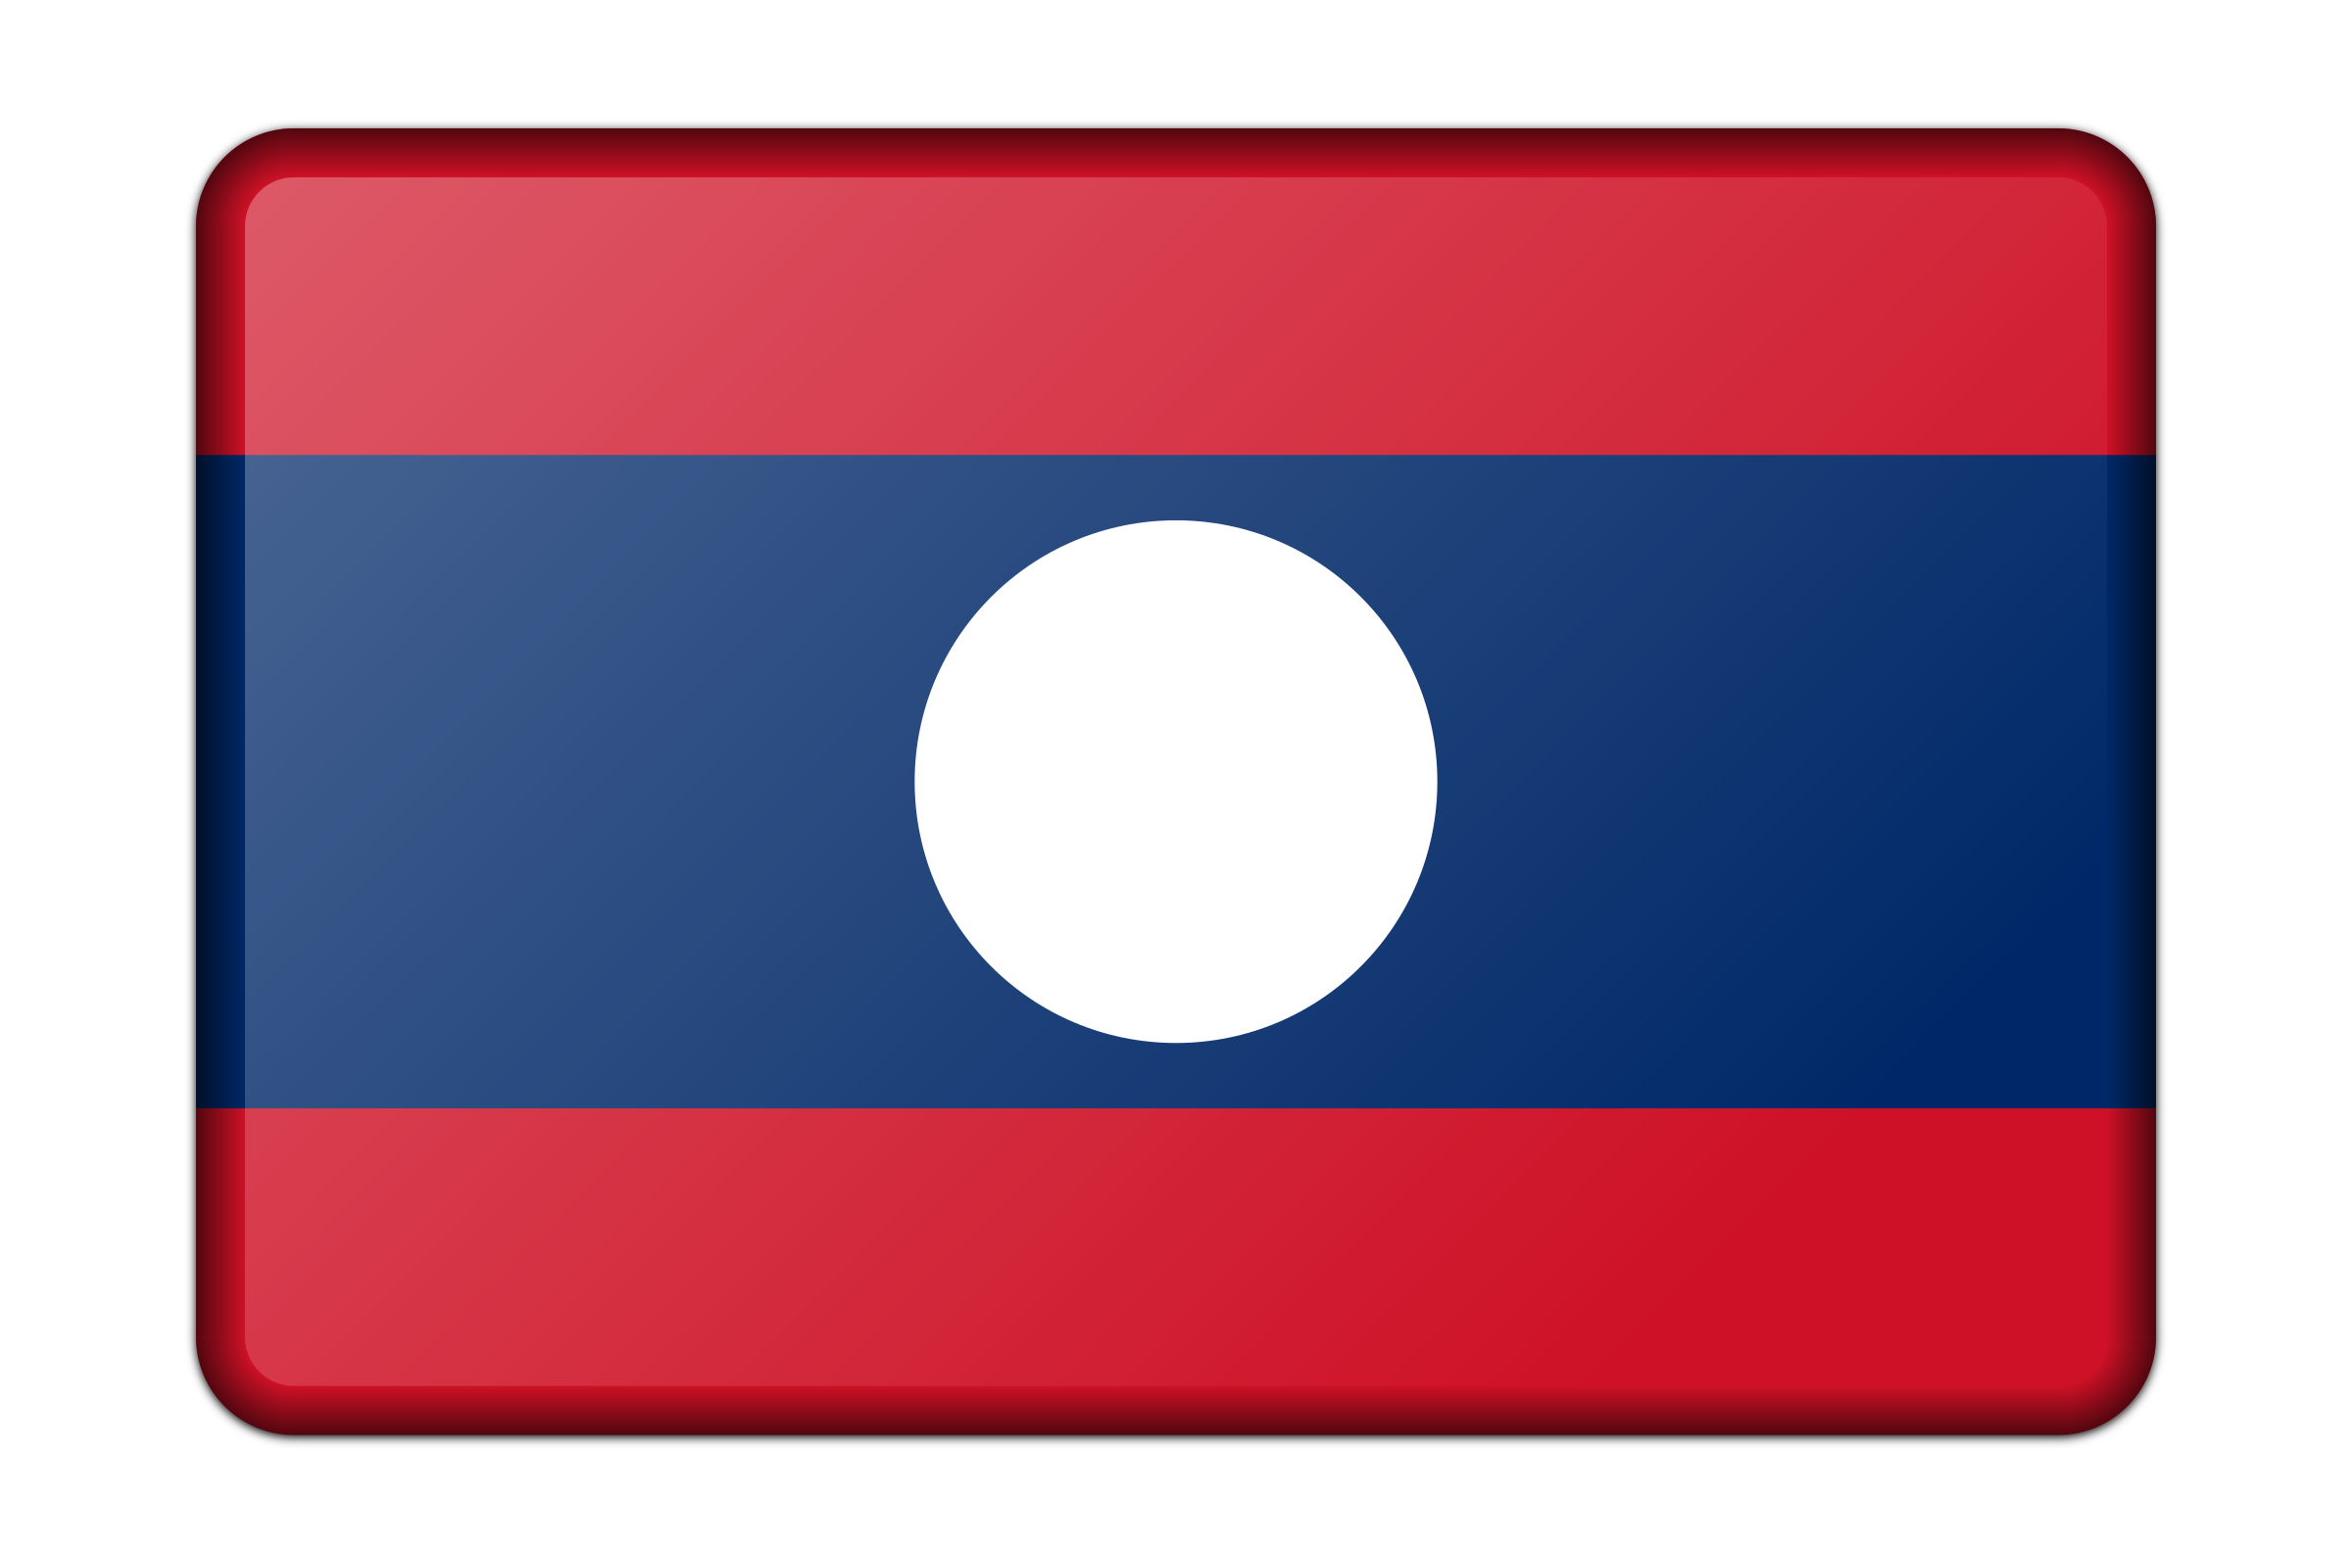 Laos flag (bevelled) by Firkin